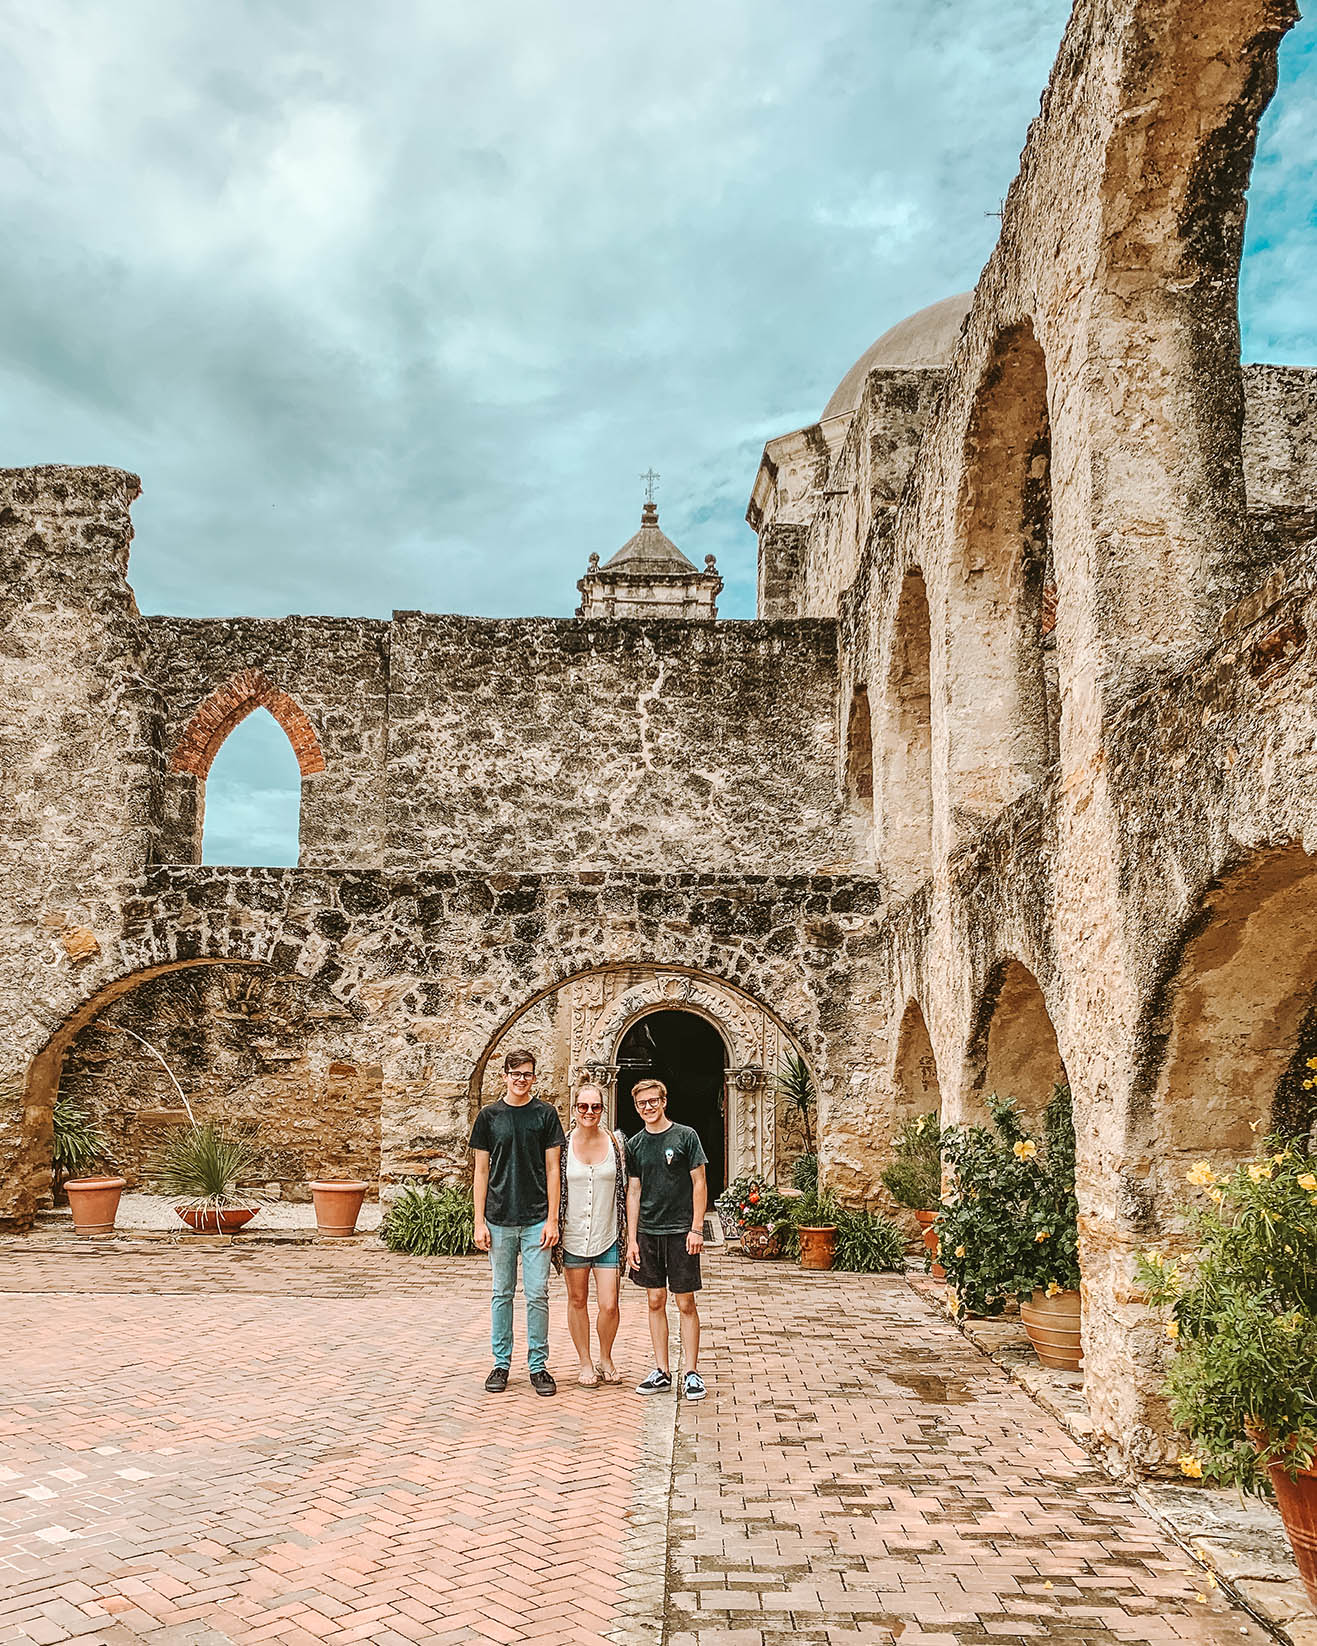 Mother and two teenaged sons standing in central area of a San Antonio Mission